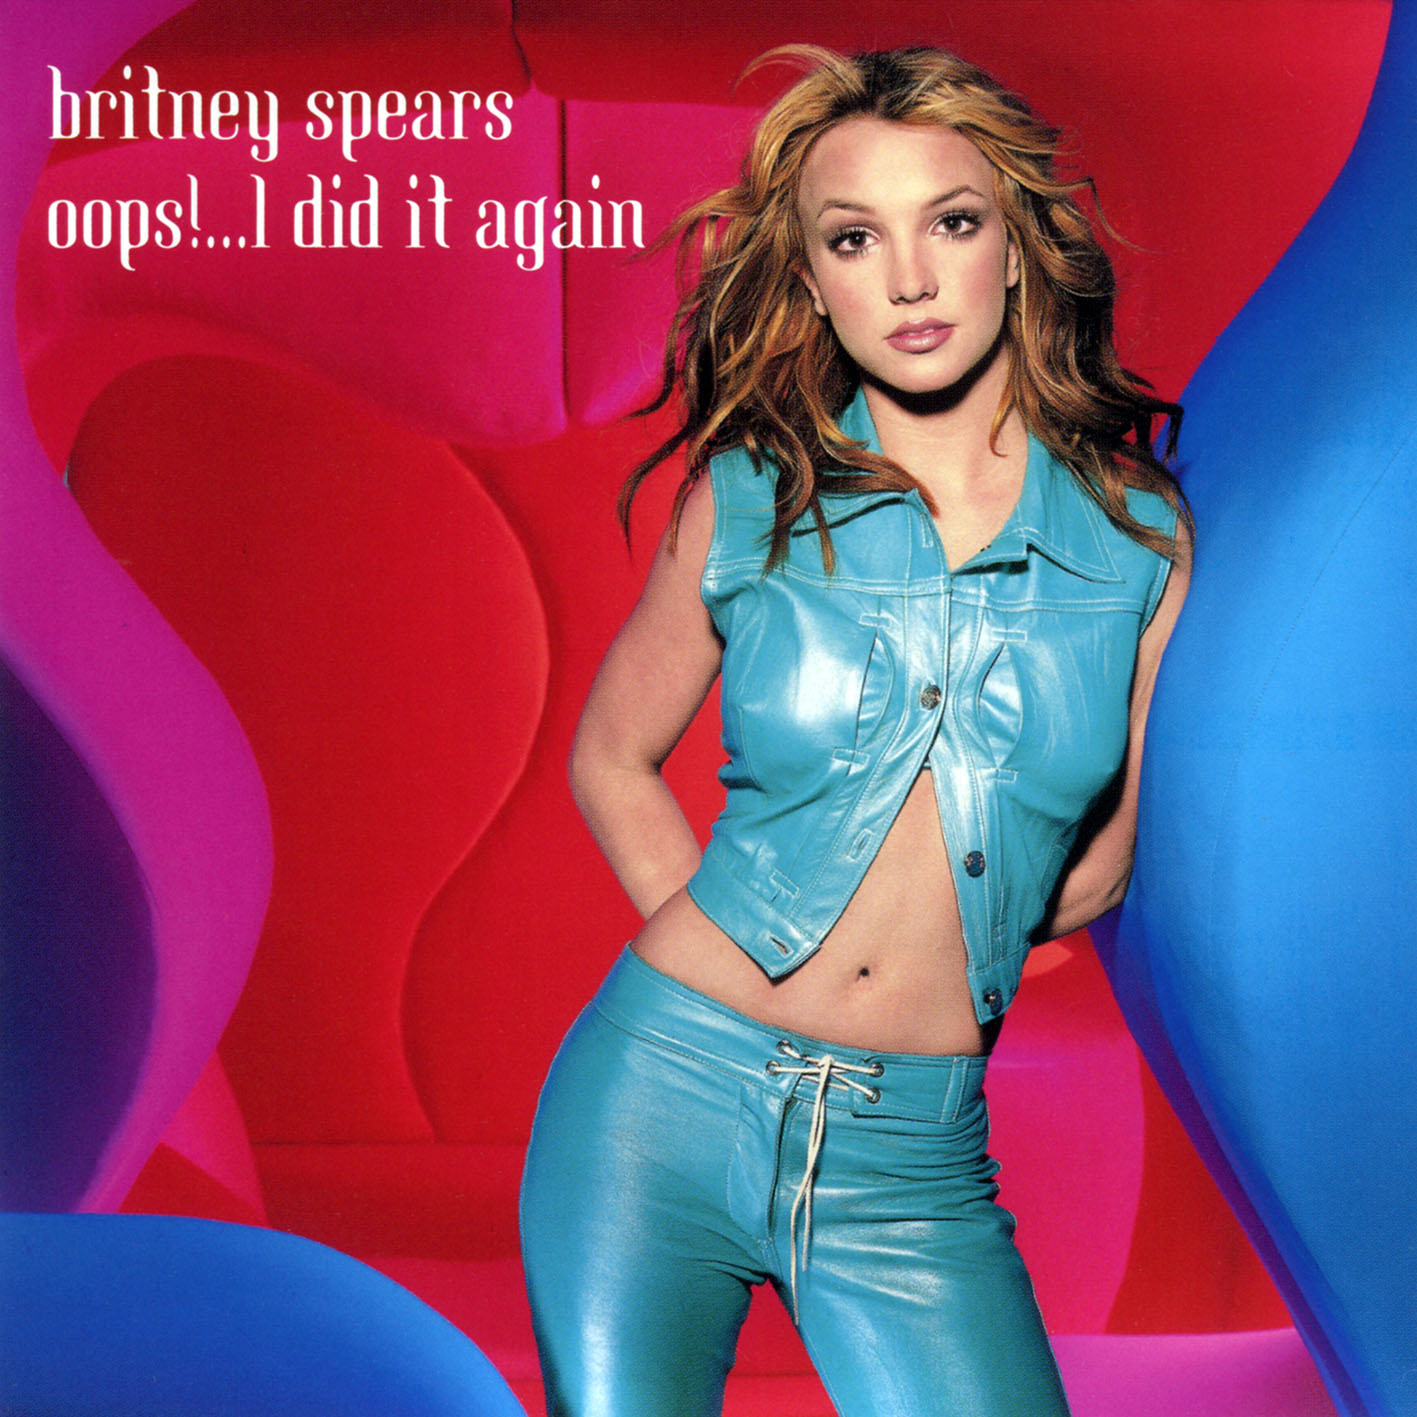 Oops i did it again song